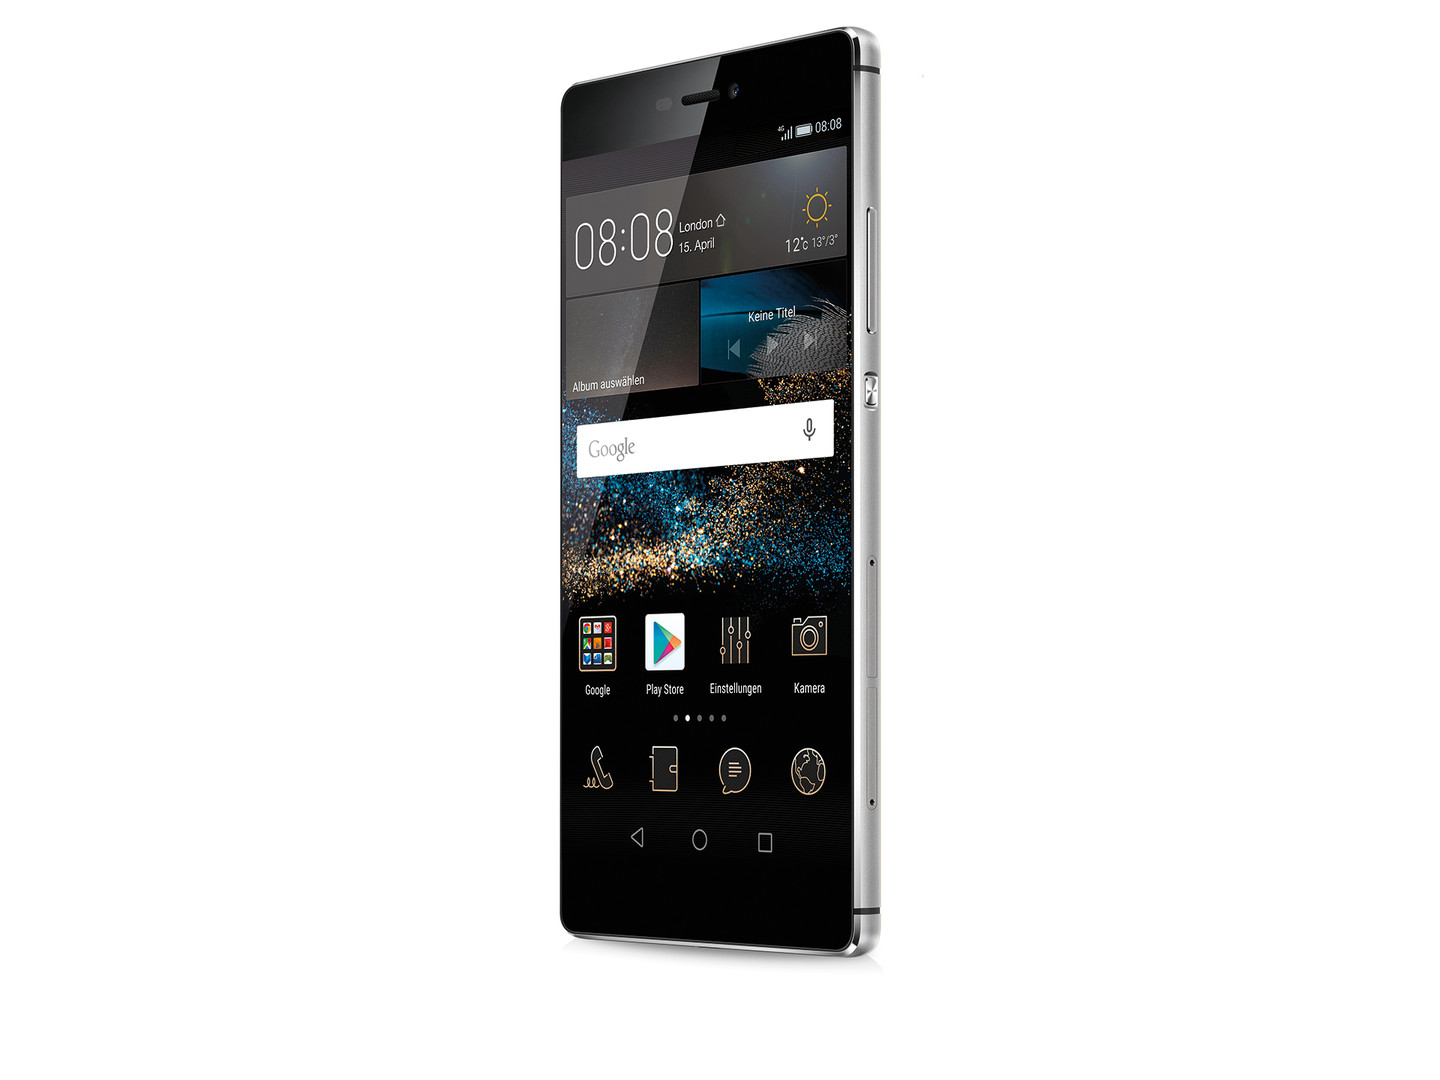 Huawei P8 Smartphone First Impressions